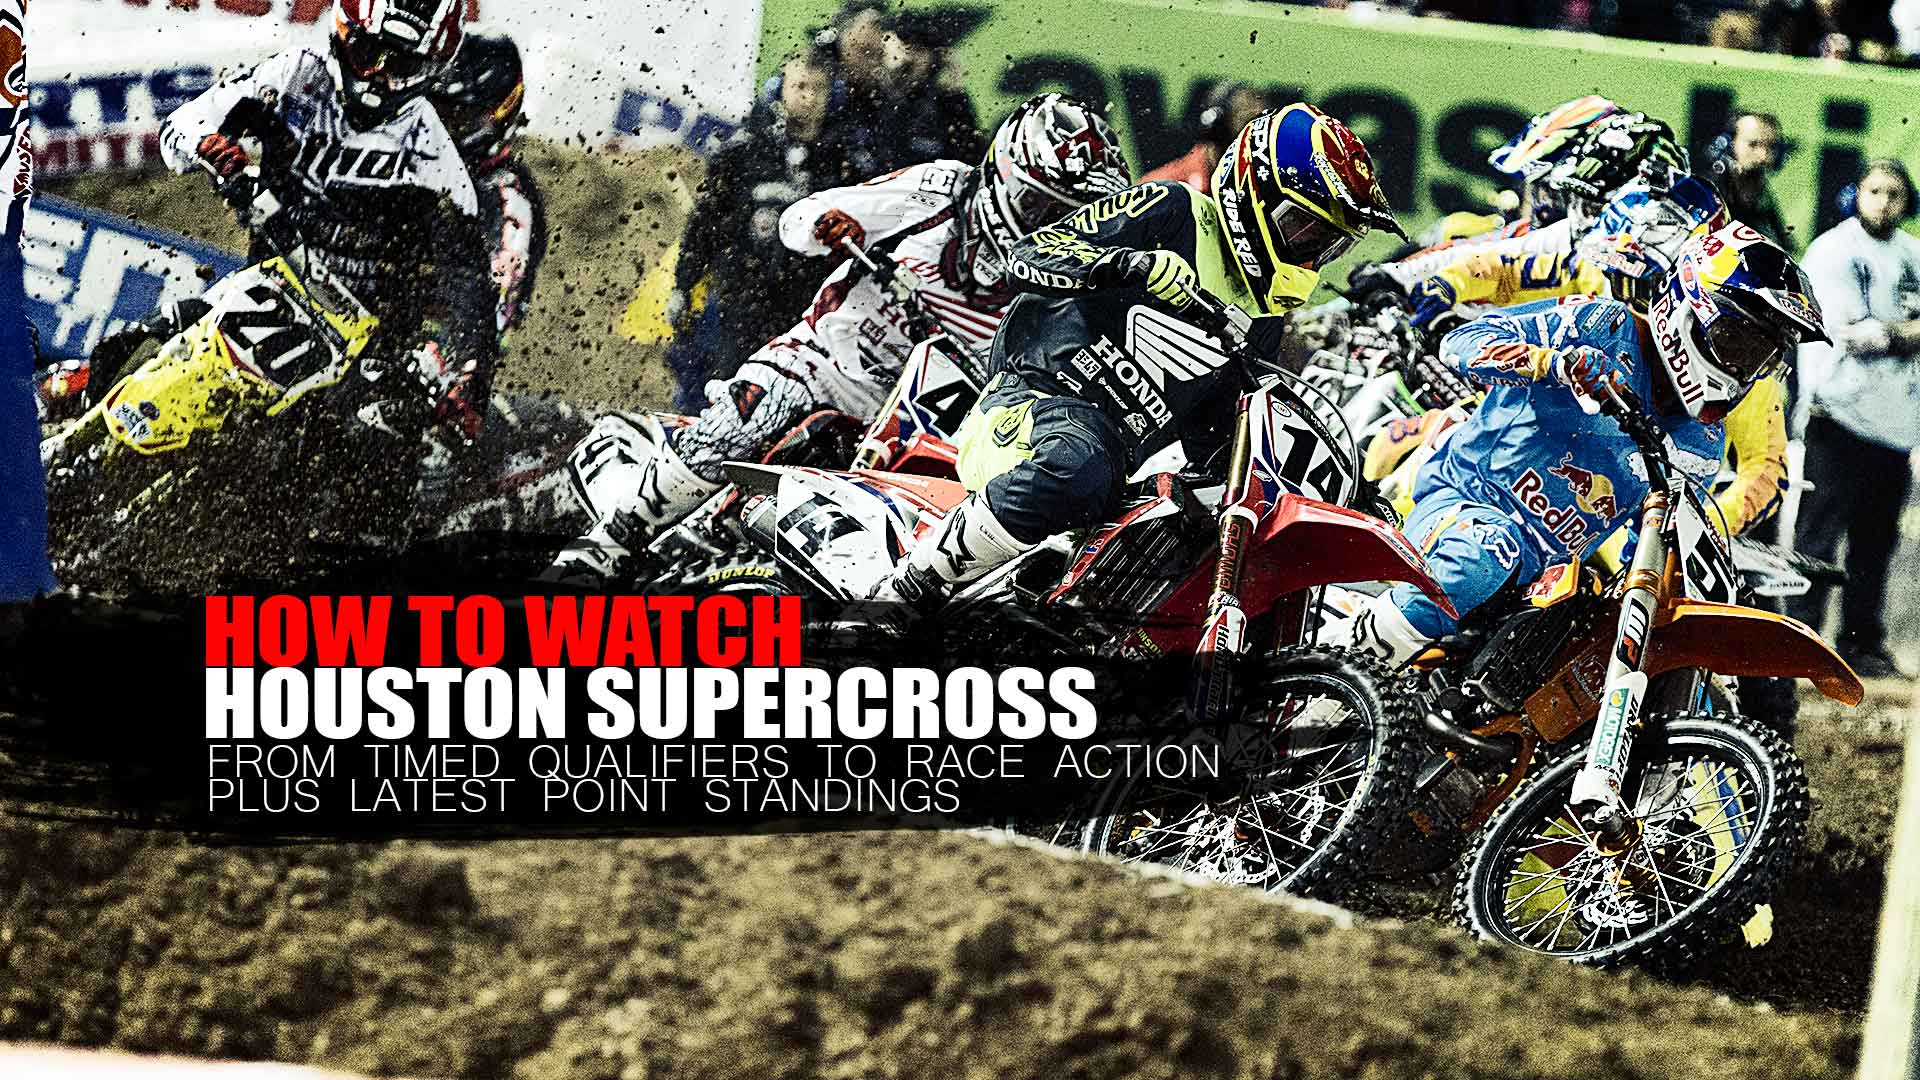 How to Watch Houston Supercross Round 14